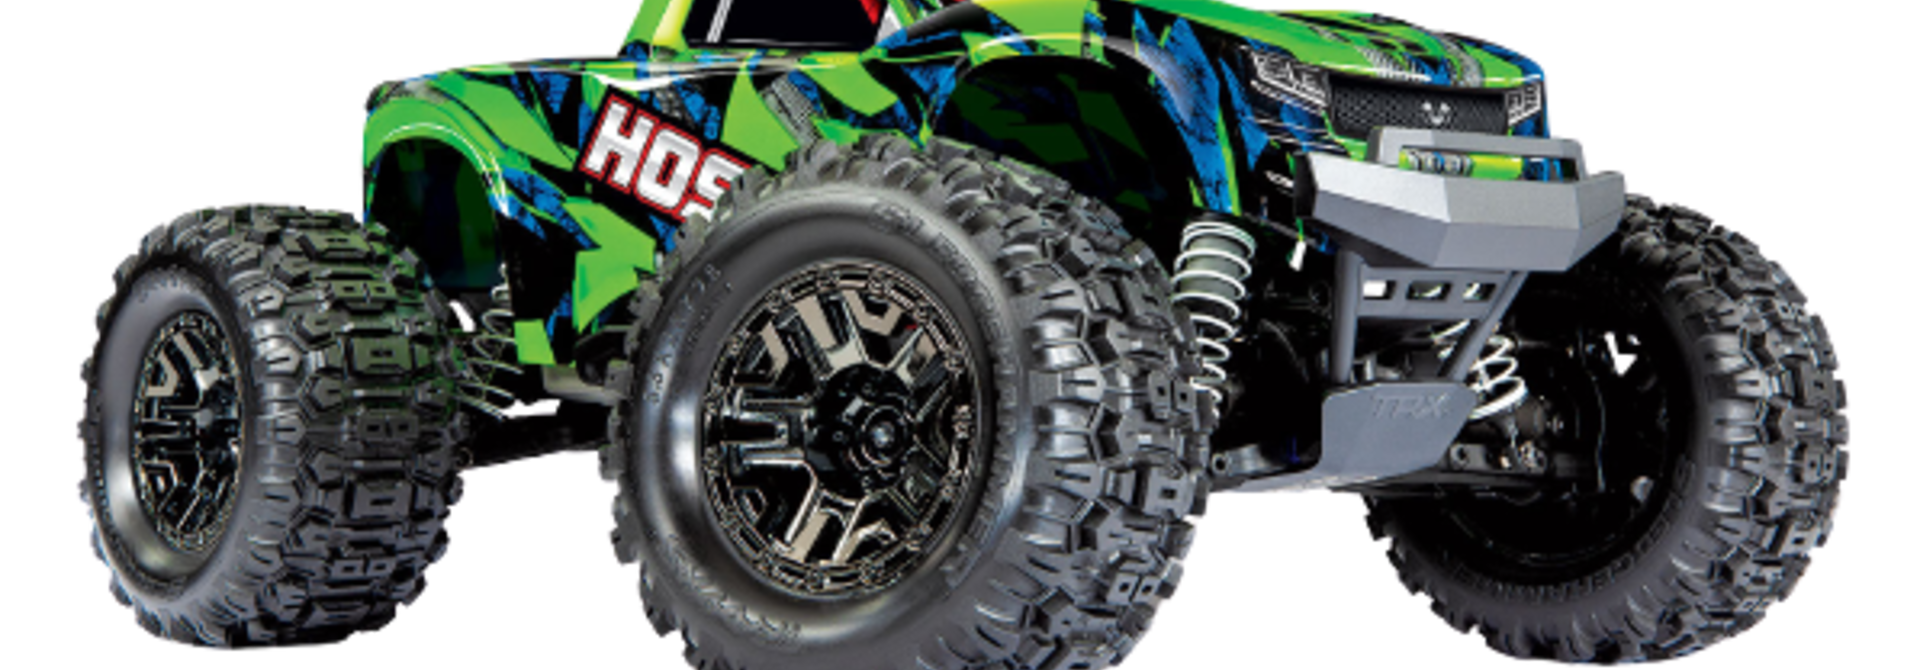 Traxxas Hoss 1/10 Scale 4WD Brushless Electric Monster Truck, VXL-3S, TQi - Green TRX90076-4G